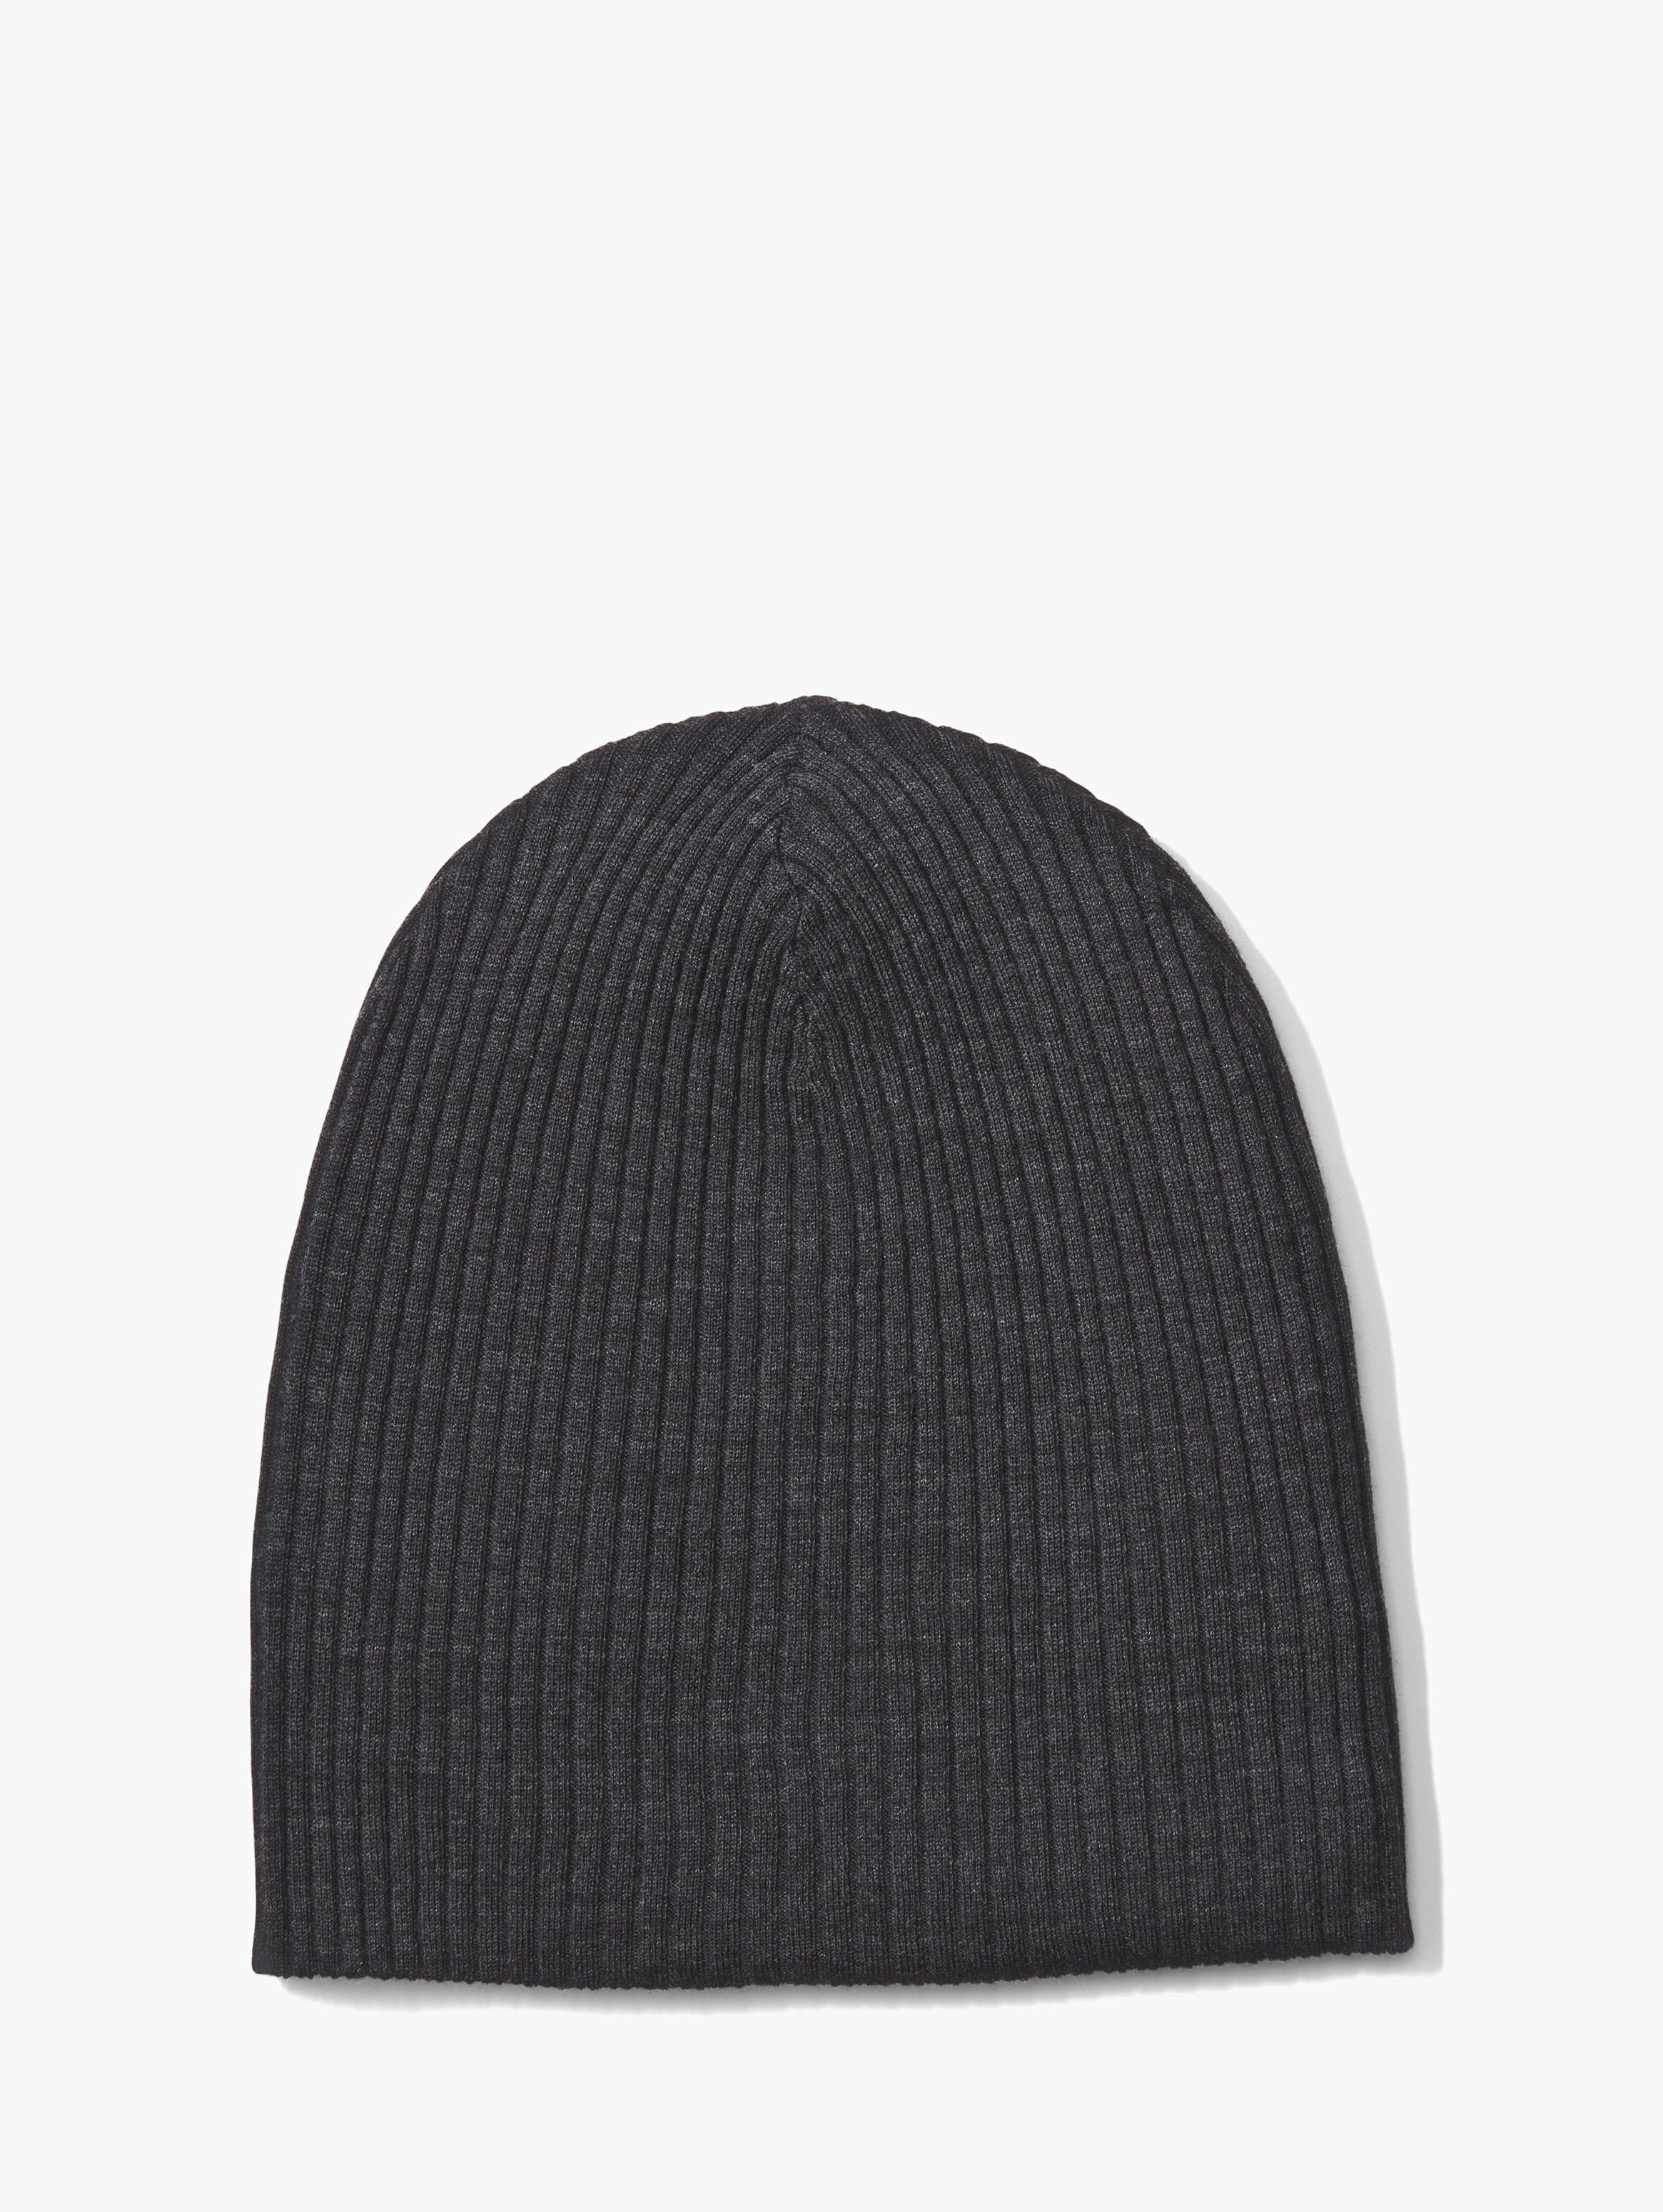 Lyst - John Varvatos Double Layer Beanie in Black for Men 651c4a8b6aa